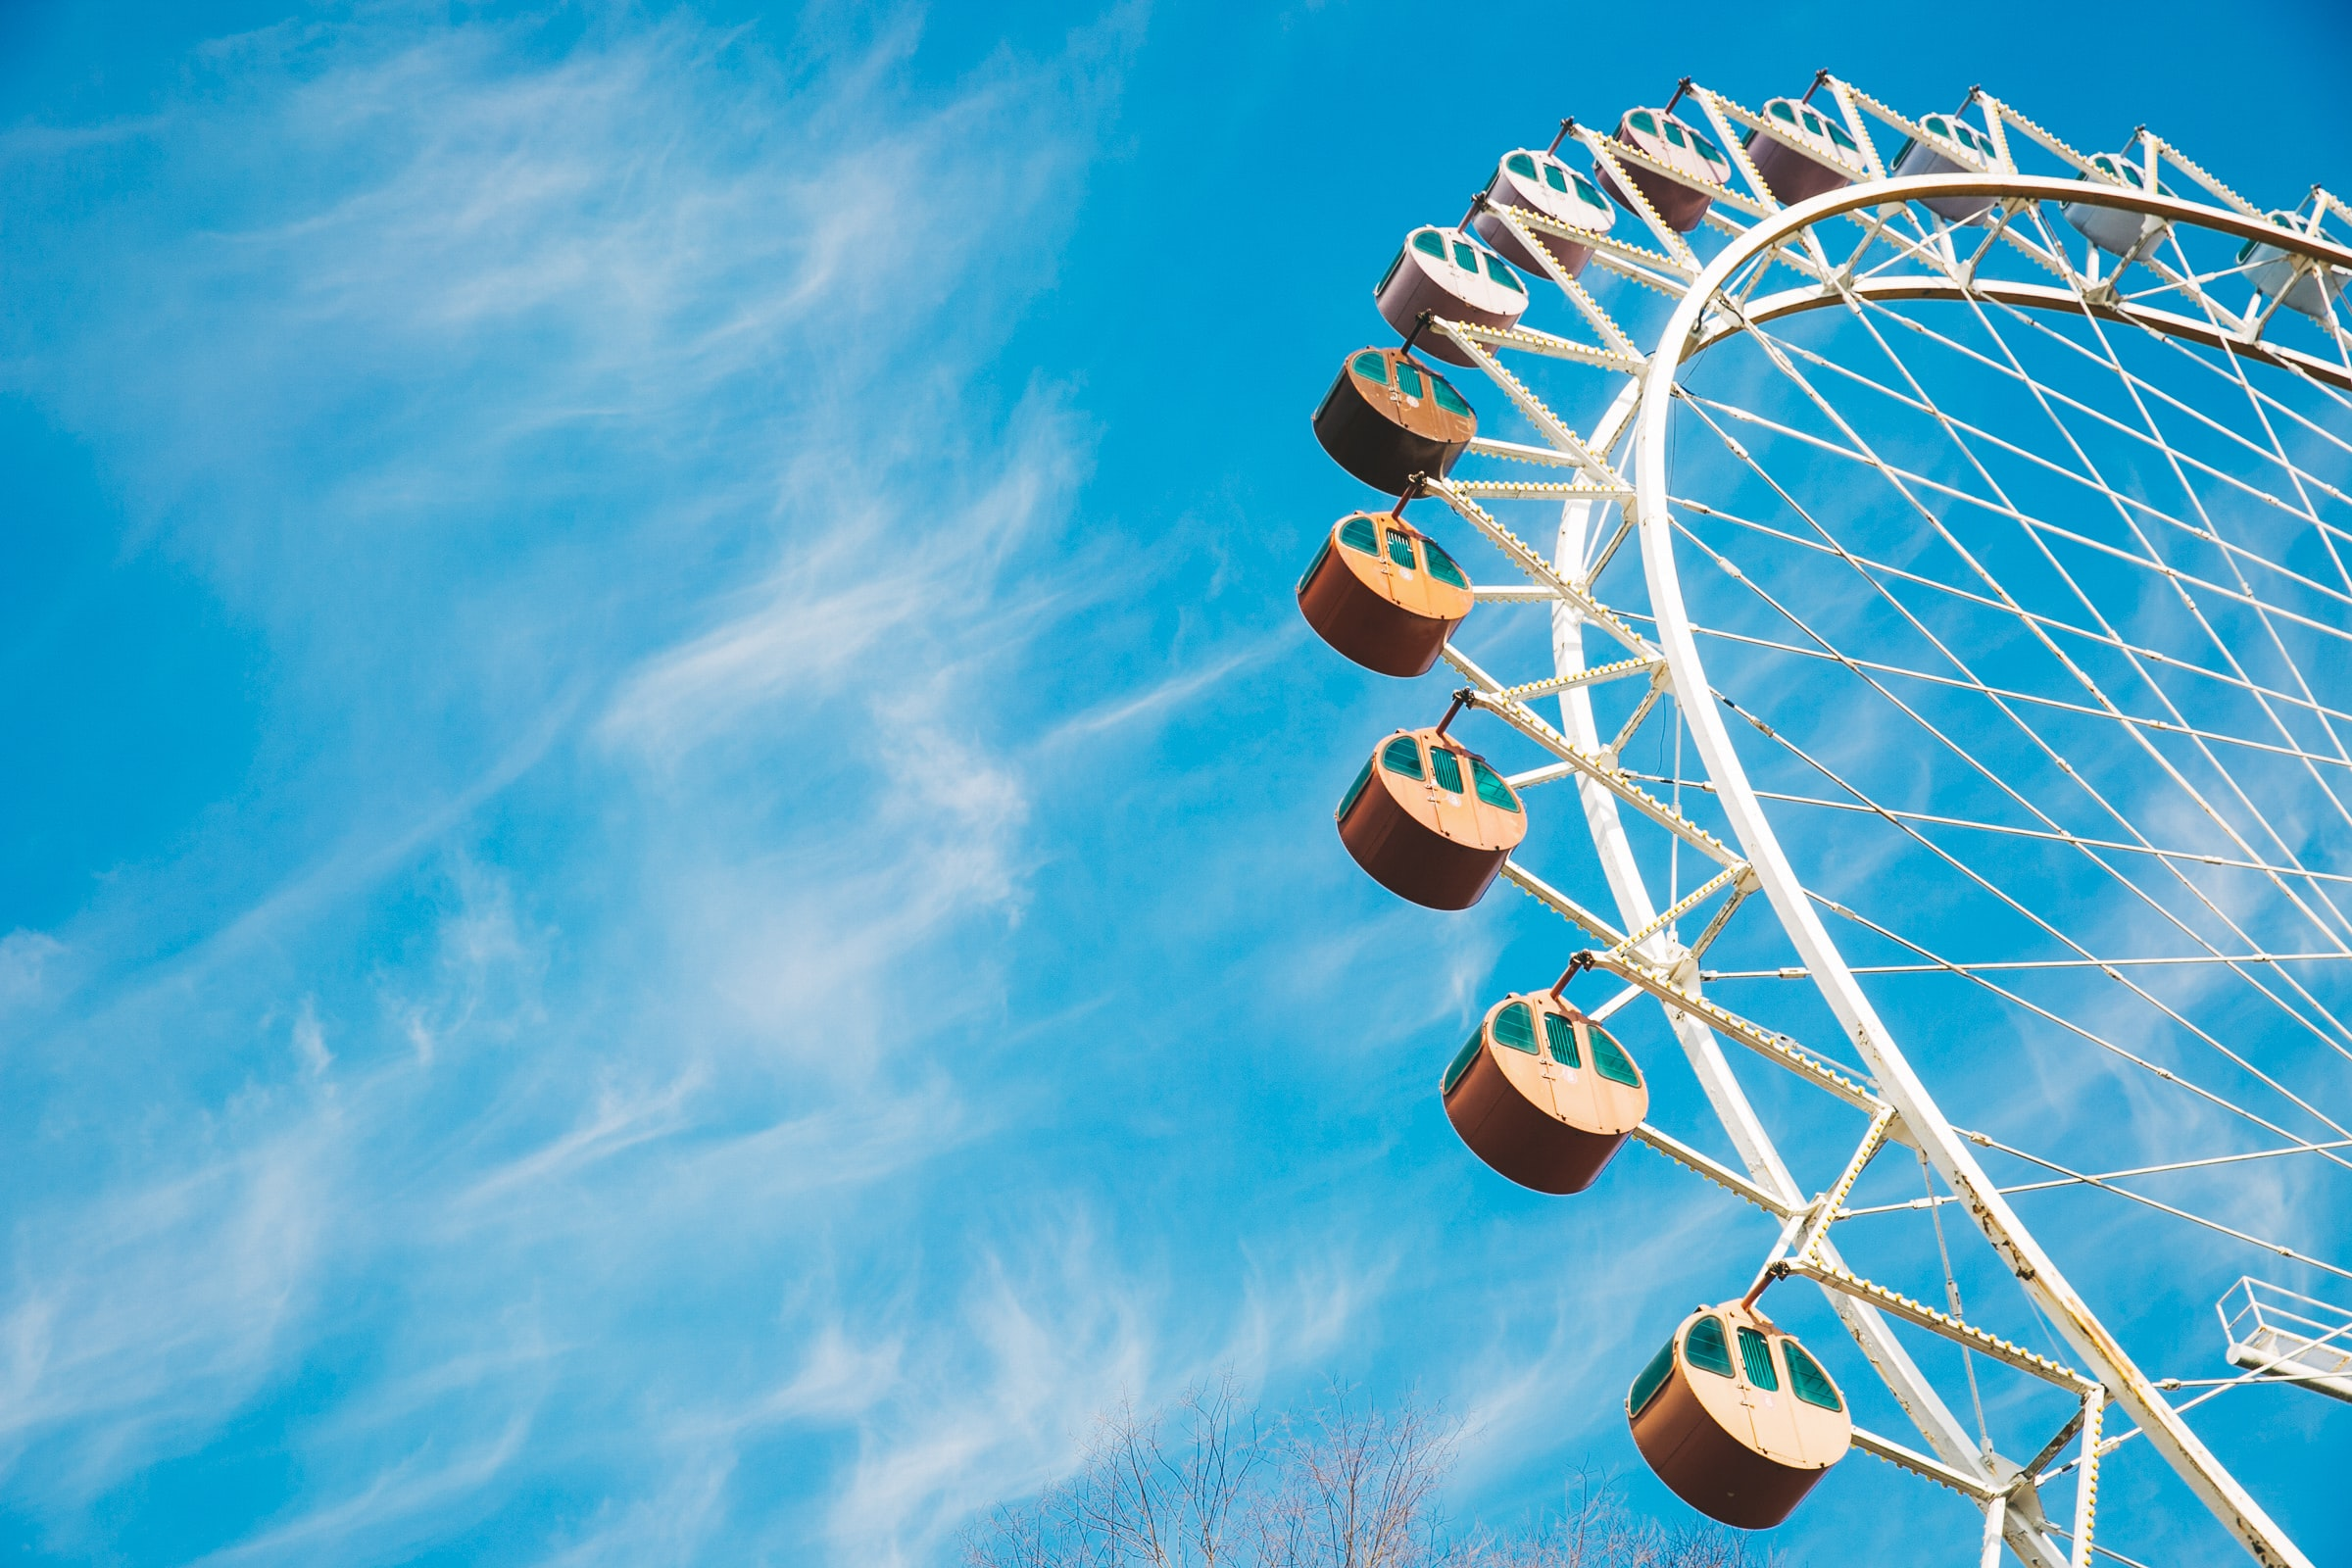 A Ferris wheel at a fairground against a blue sky